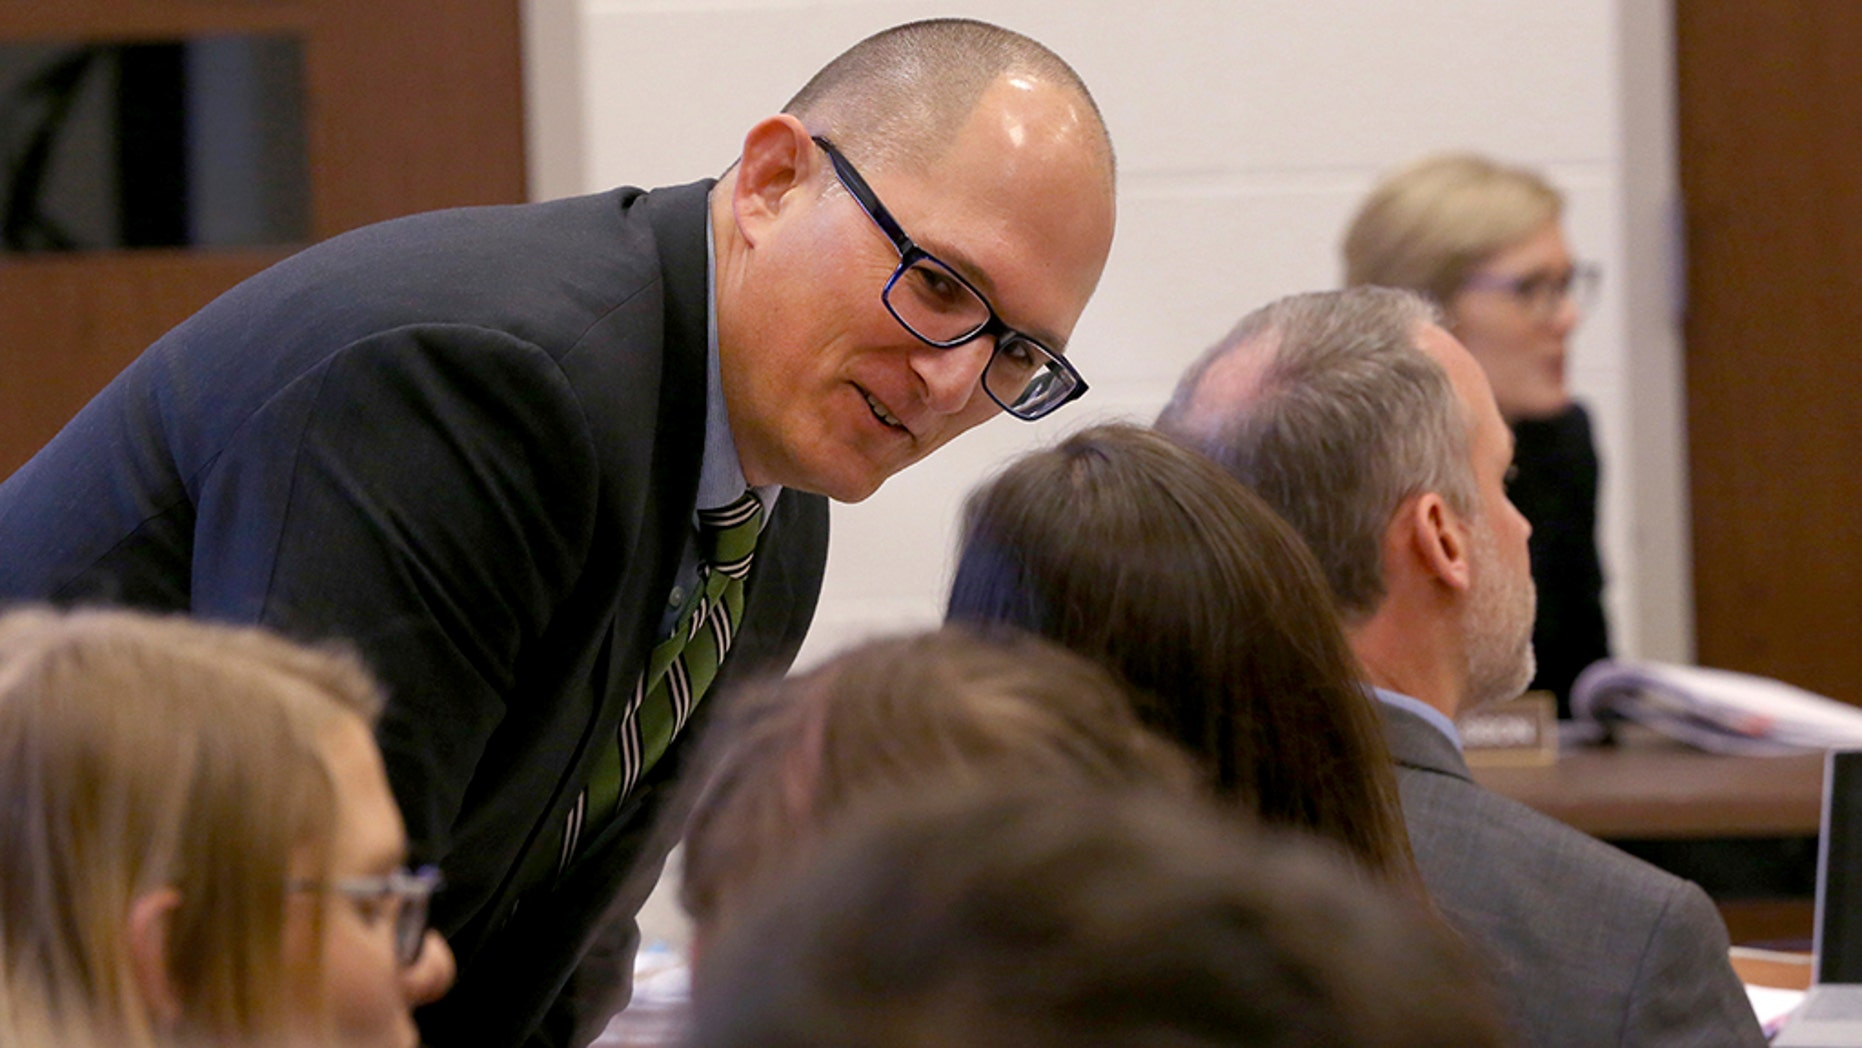 High school teacher Peter Vlaming chats at a West Point School Board hearing in West Point, Va., Dec. 6, 2018. The board voted unanimously to dismiss Vlaming.